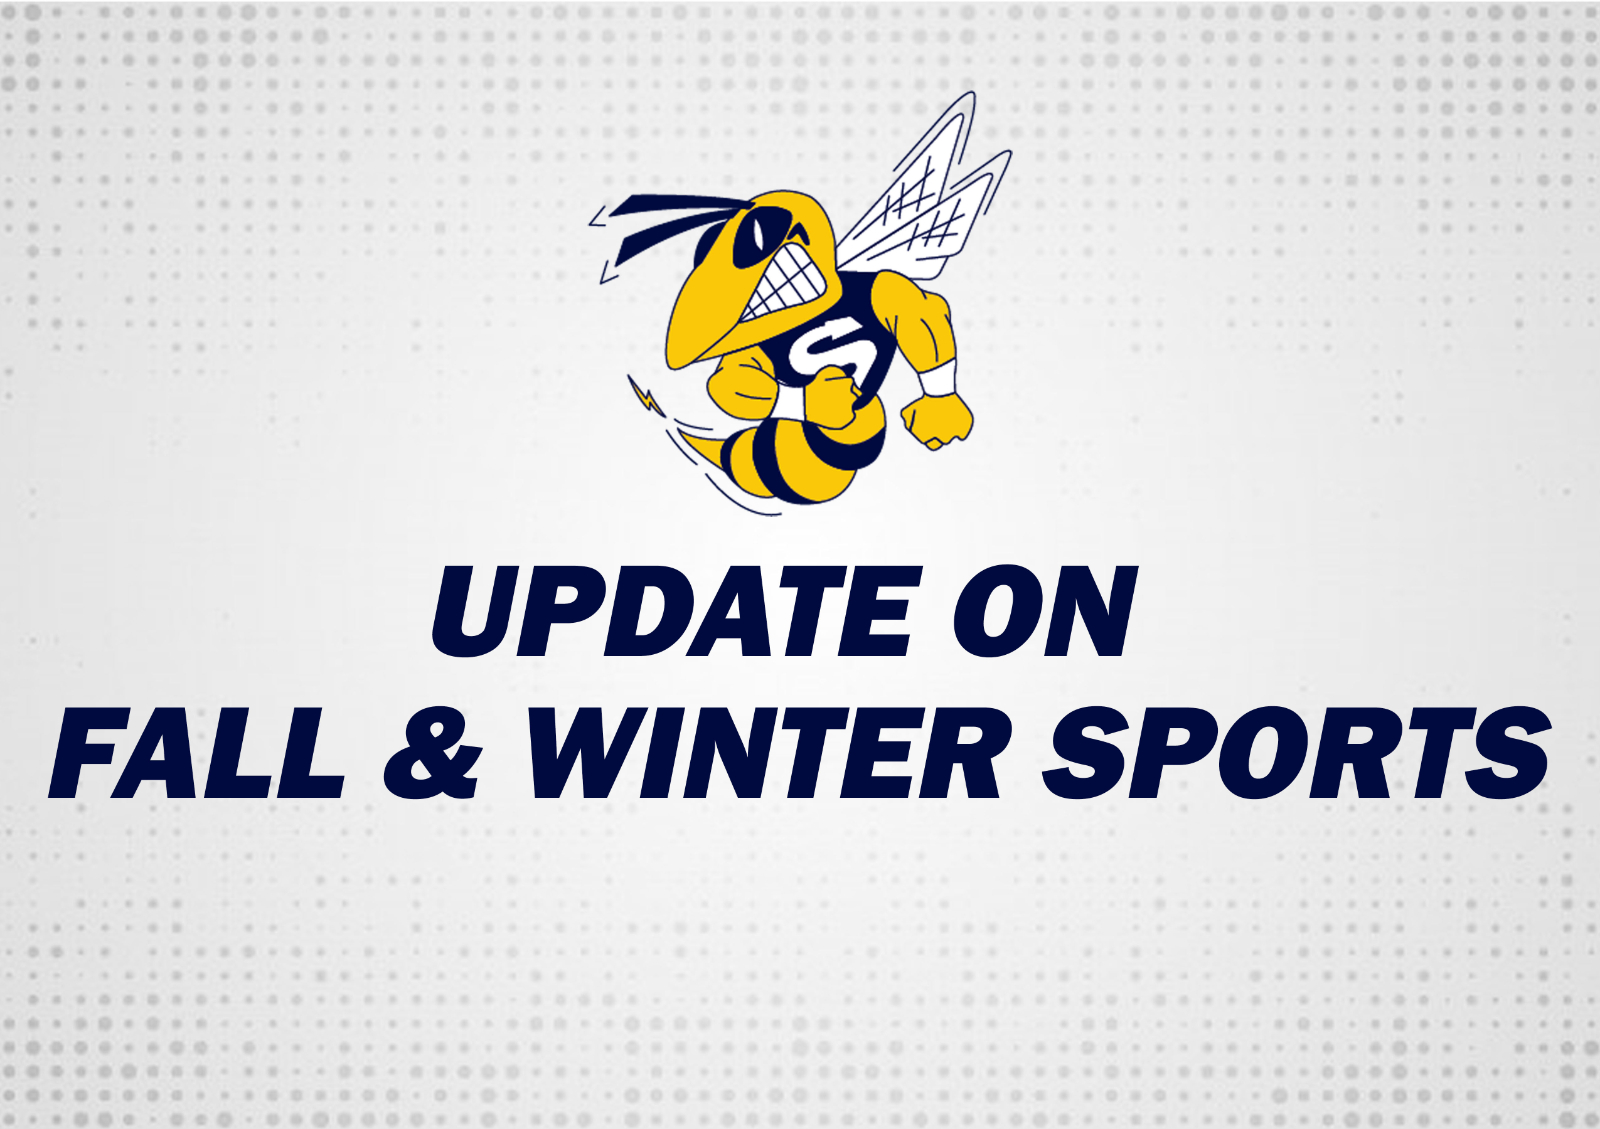 Fall & Winter Sports Update